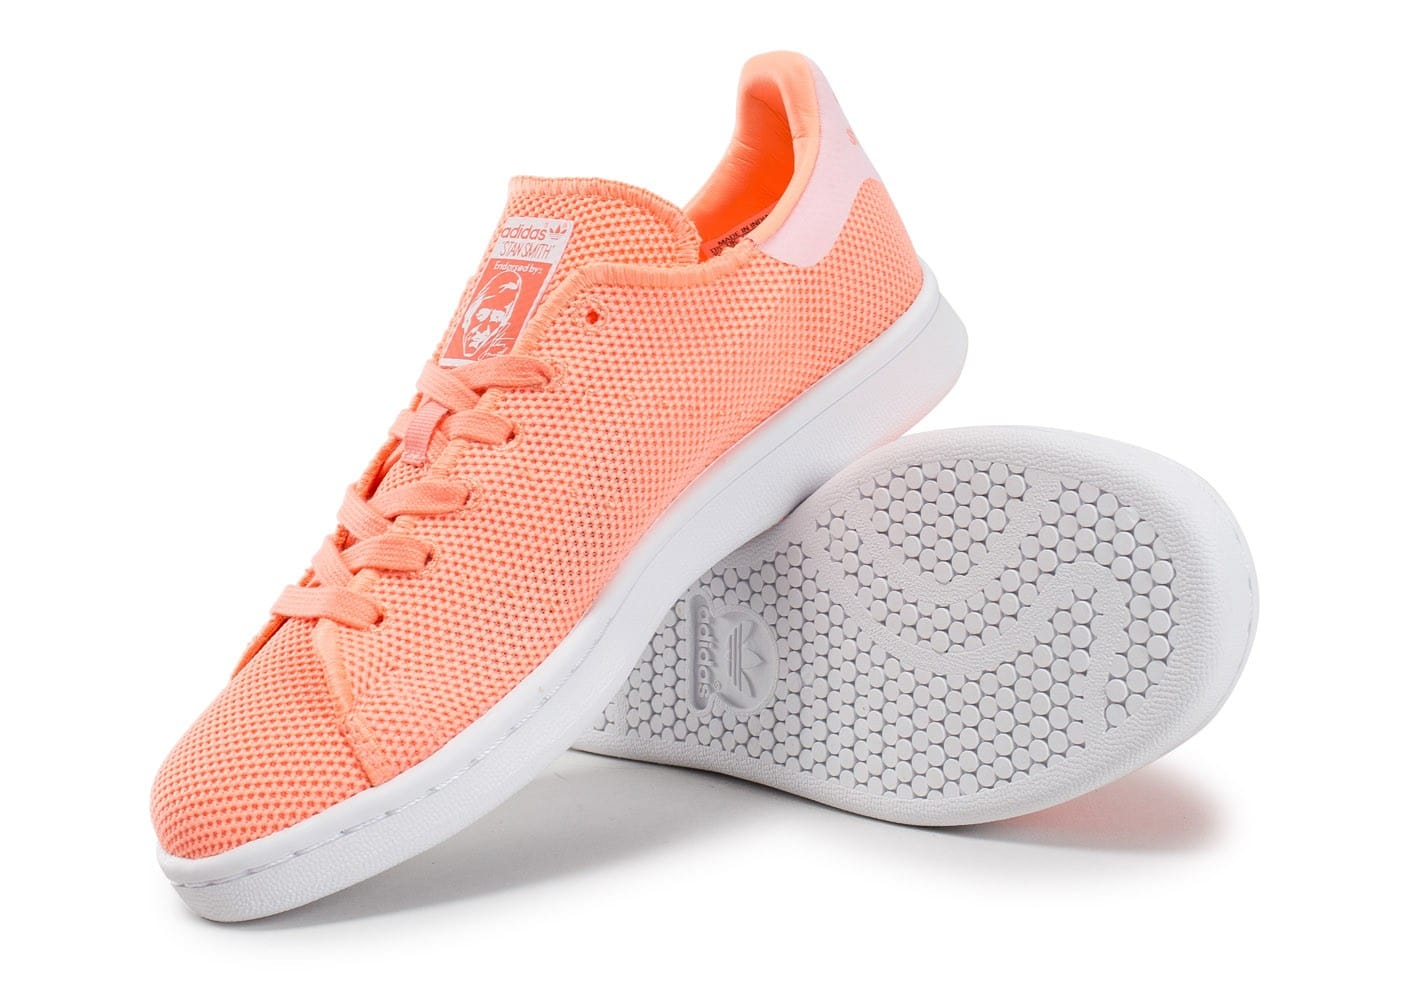 meet 91cf1 80559 Mesh Chausport Stan glow W Smith adidas adidas Chaussures su